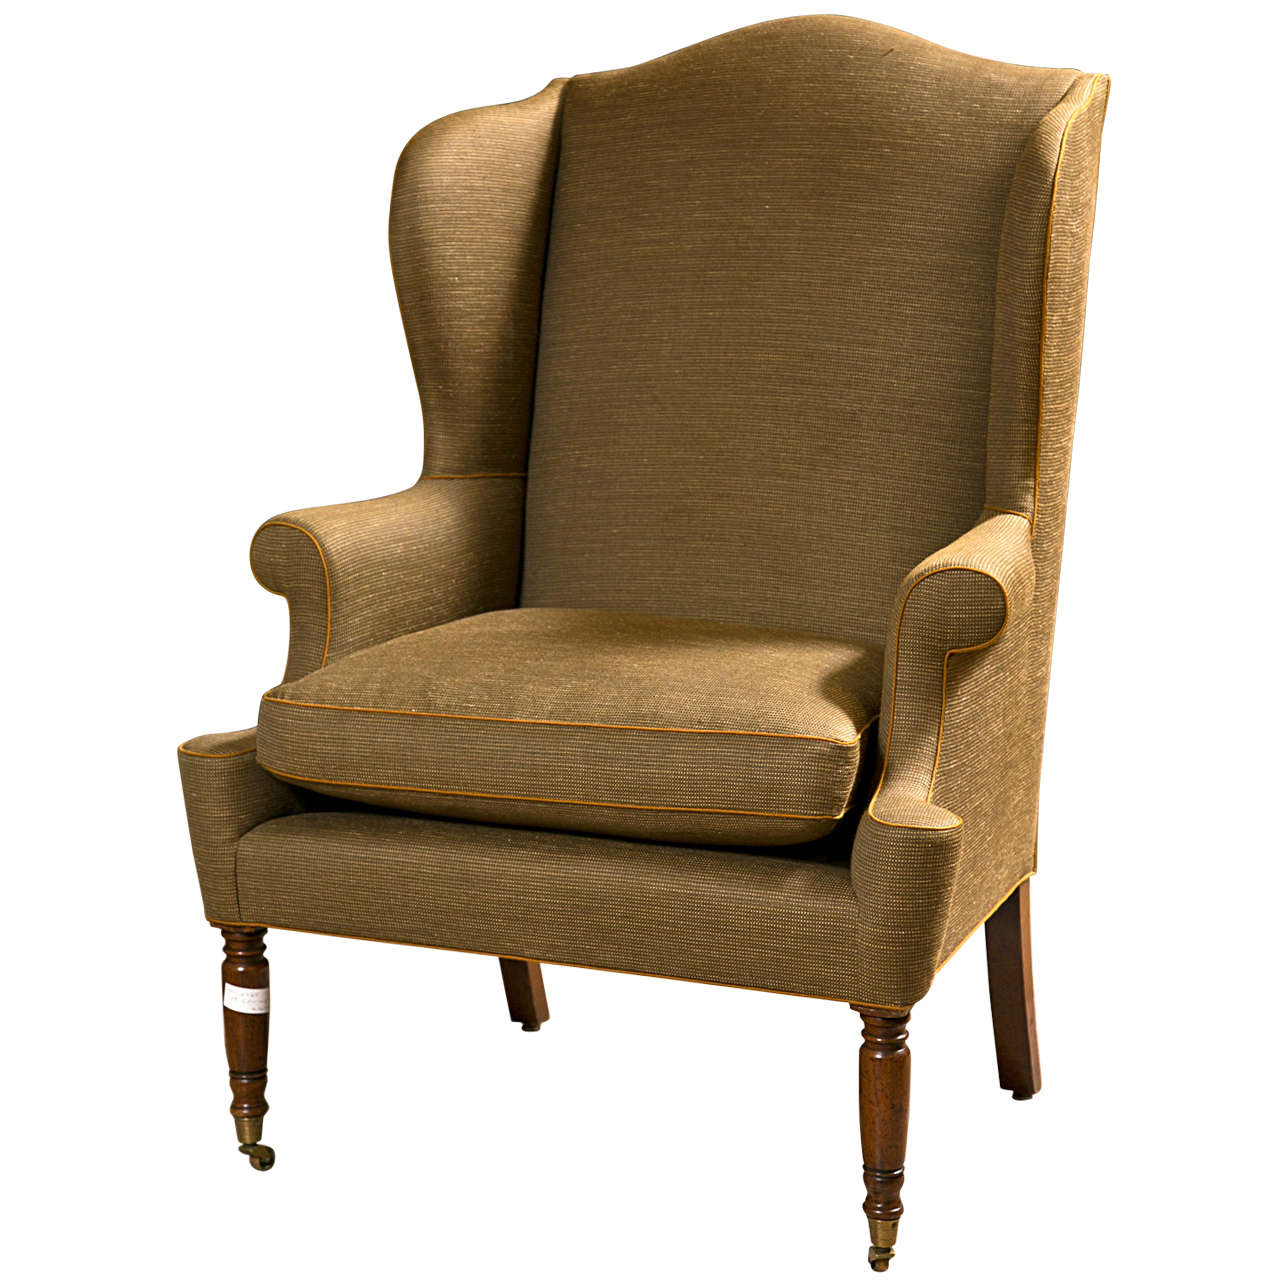 bergere chairs for sale desk chair no arms american wingback at 1stdibs